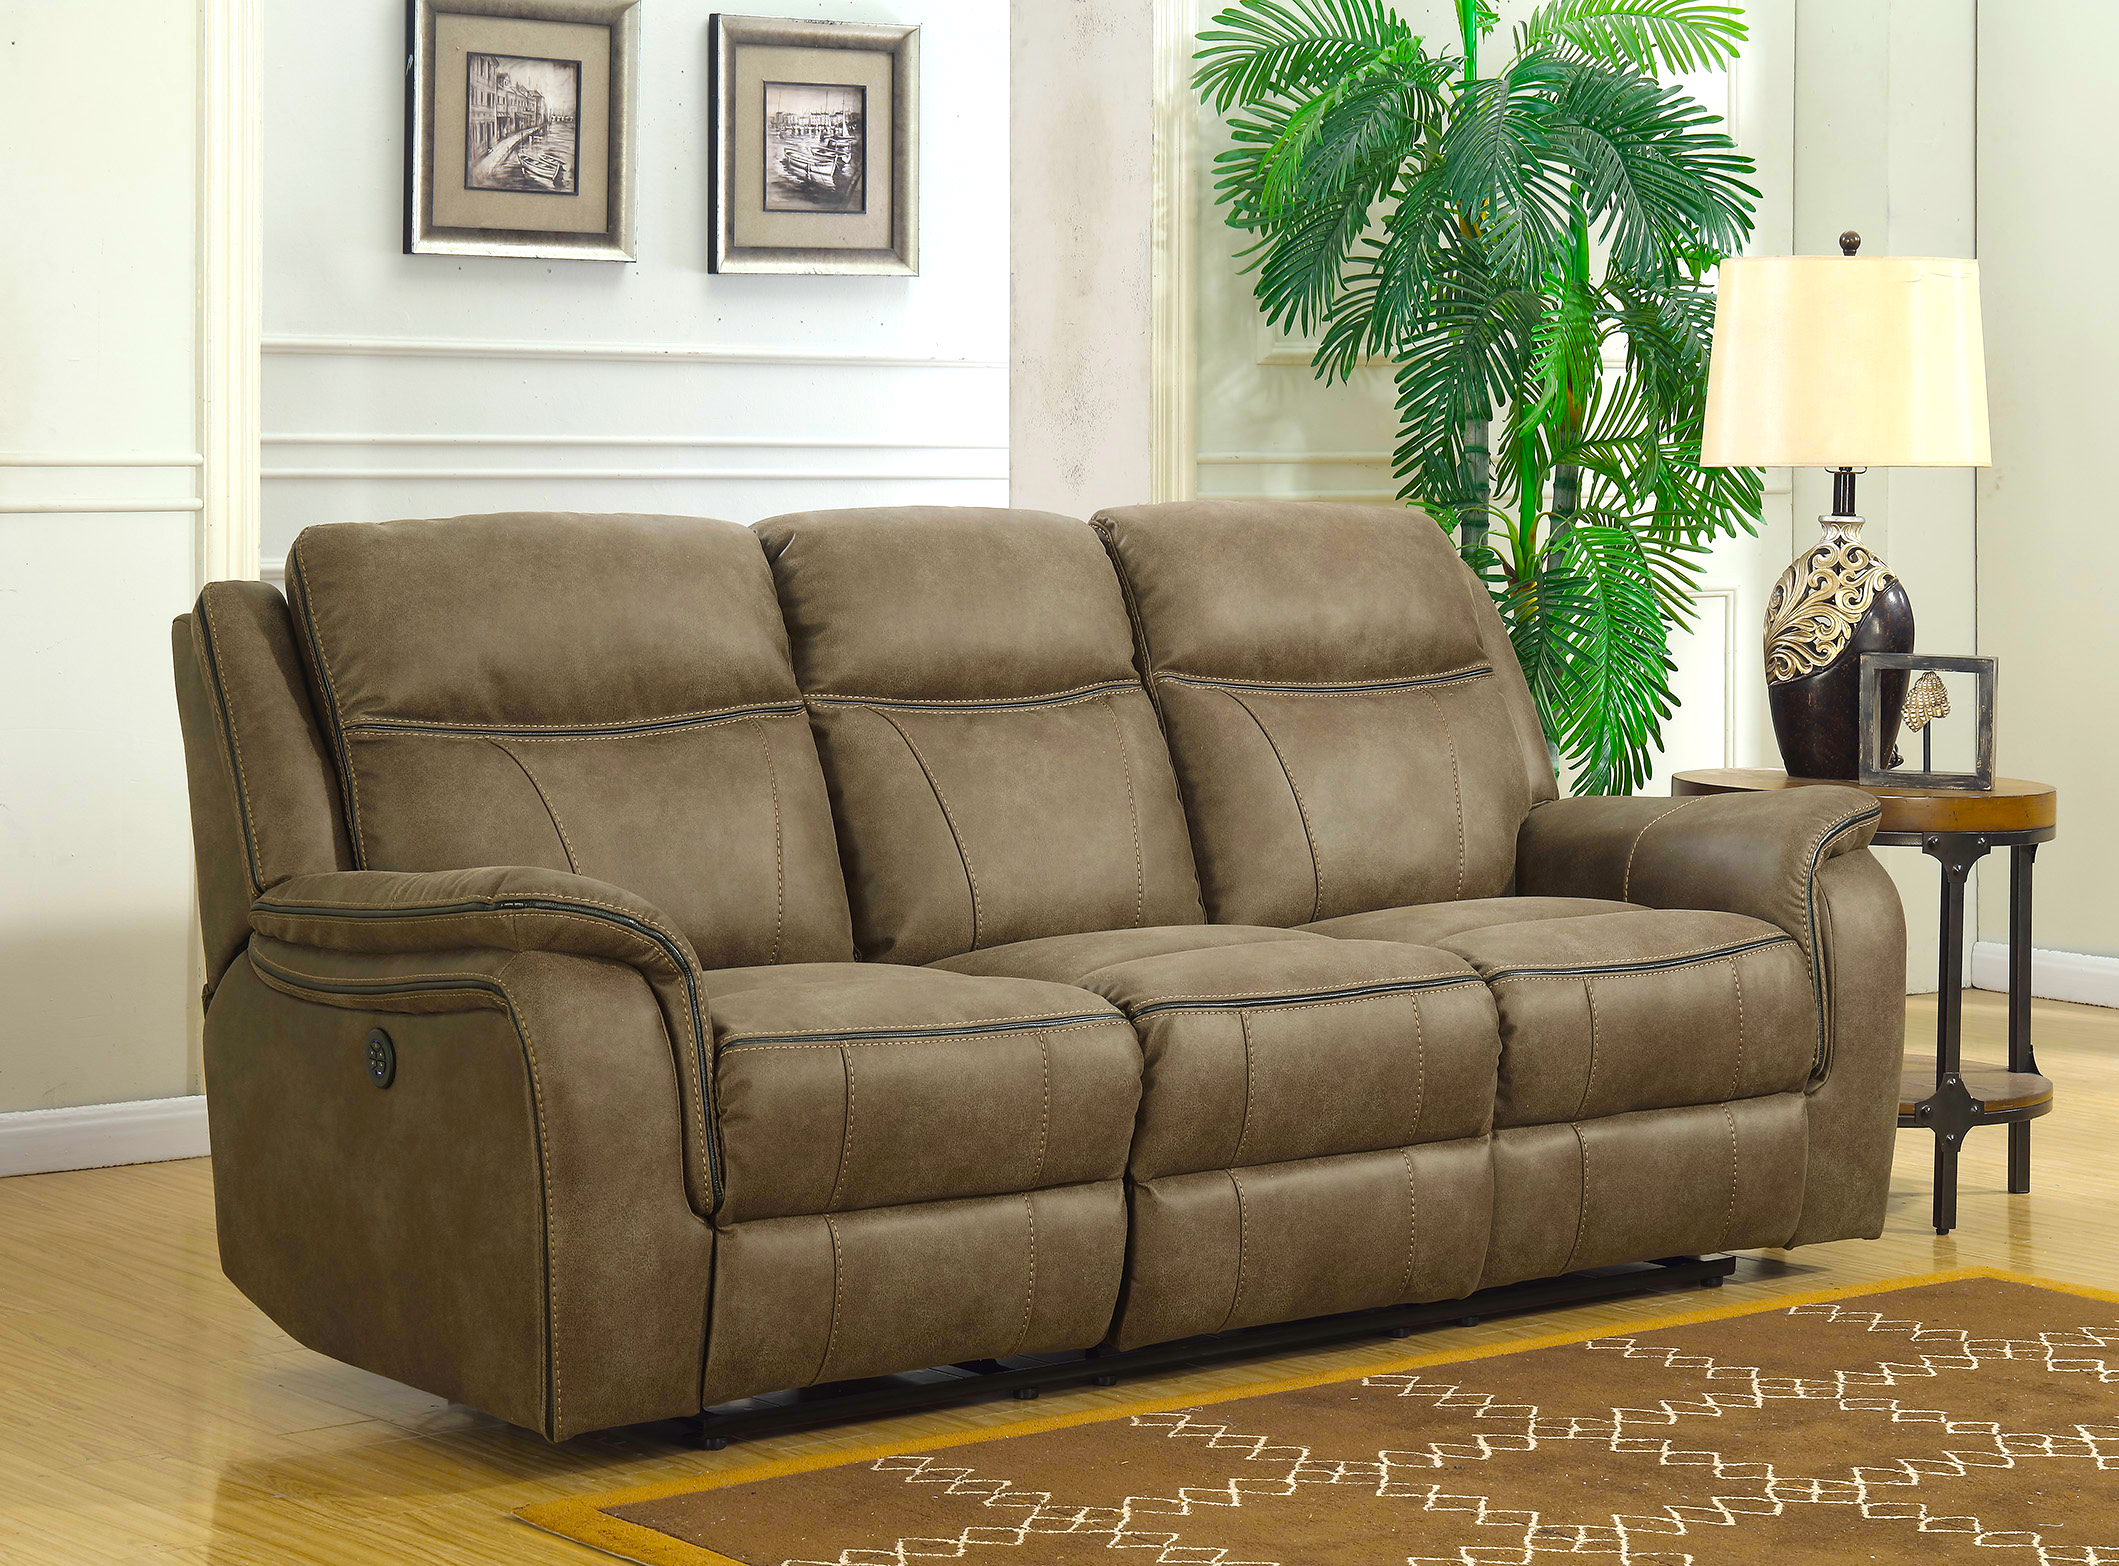 MNY2242-6PH Sofa Room Shot.jpg